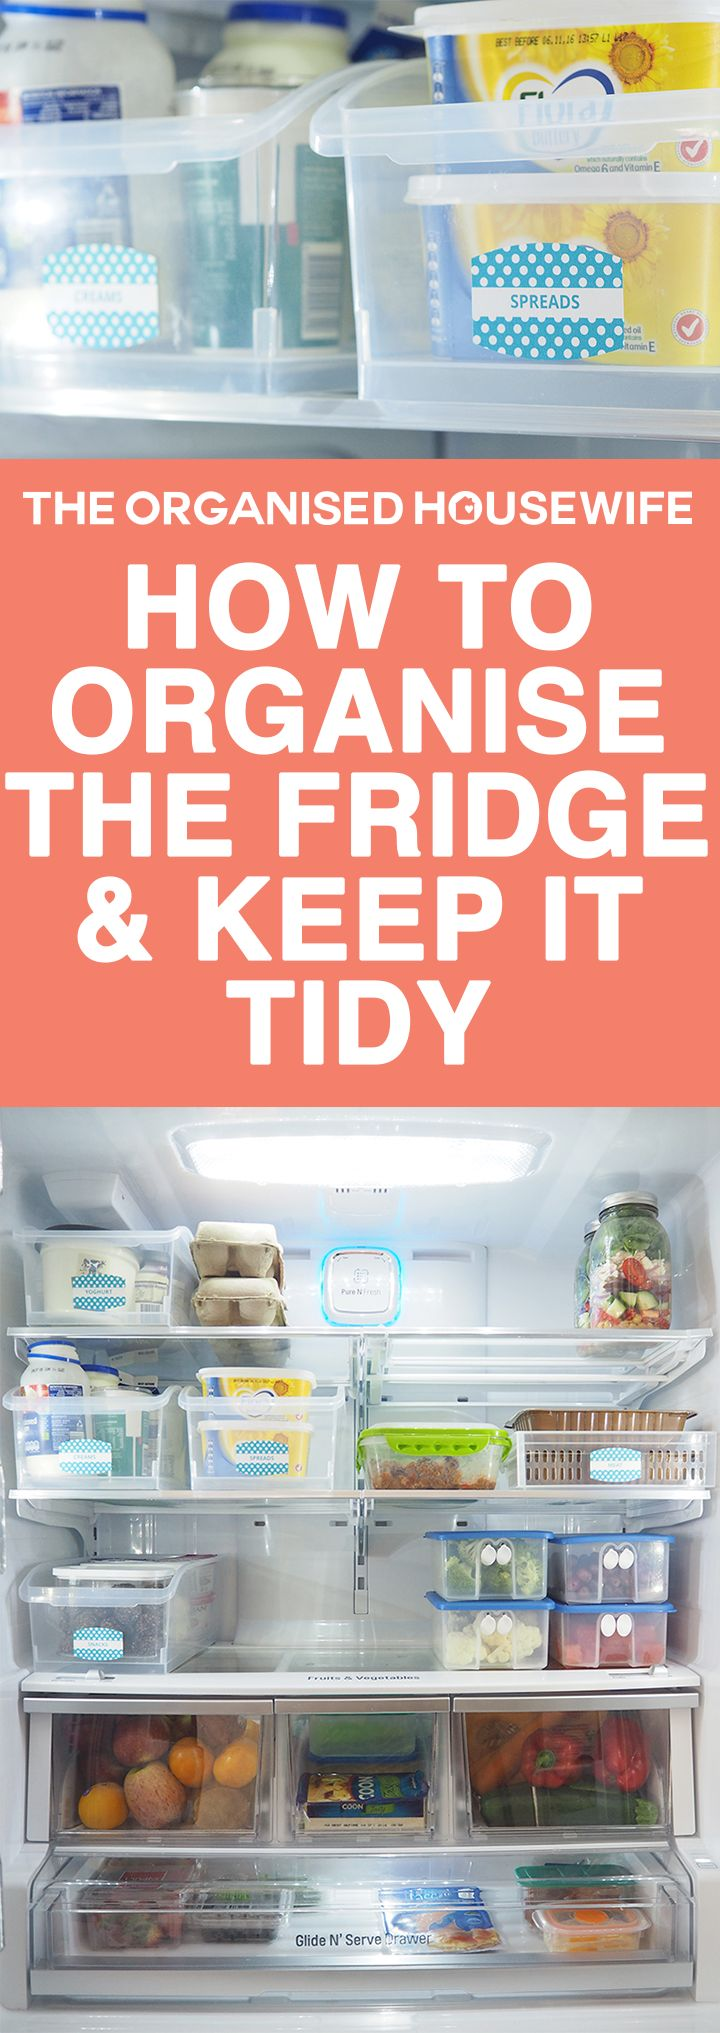 How To Organise The Fridge And Keep It Tidy Shopping